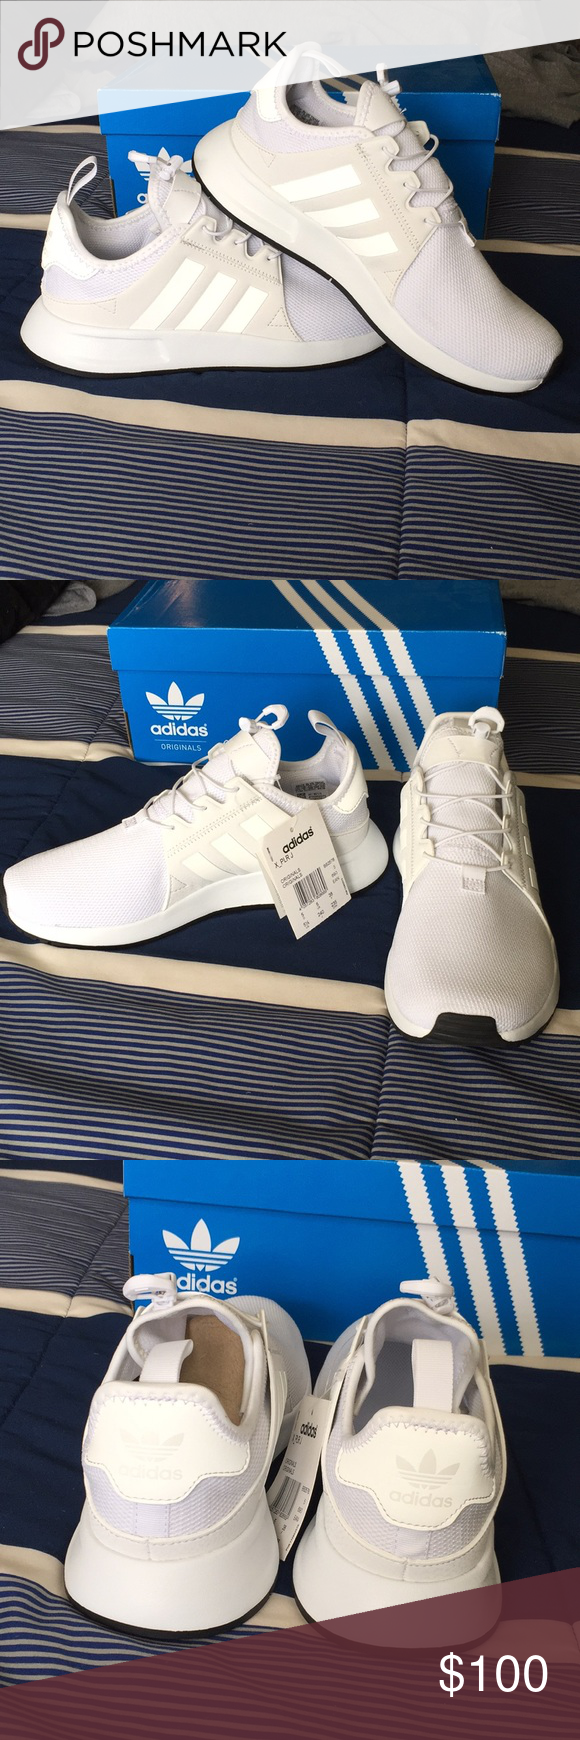 Adidas X plr J Kids Trainers in White UK size 5 New with box. Size 5UK kids    size 8 women s US. I am a size 8 in women s and these were too ... 97184f3ed